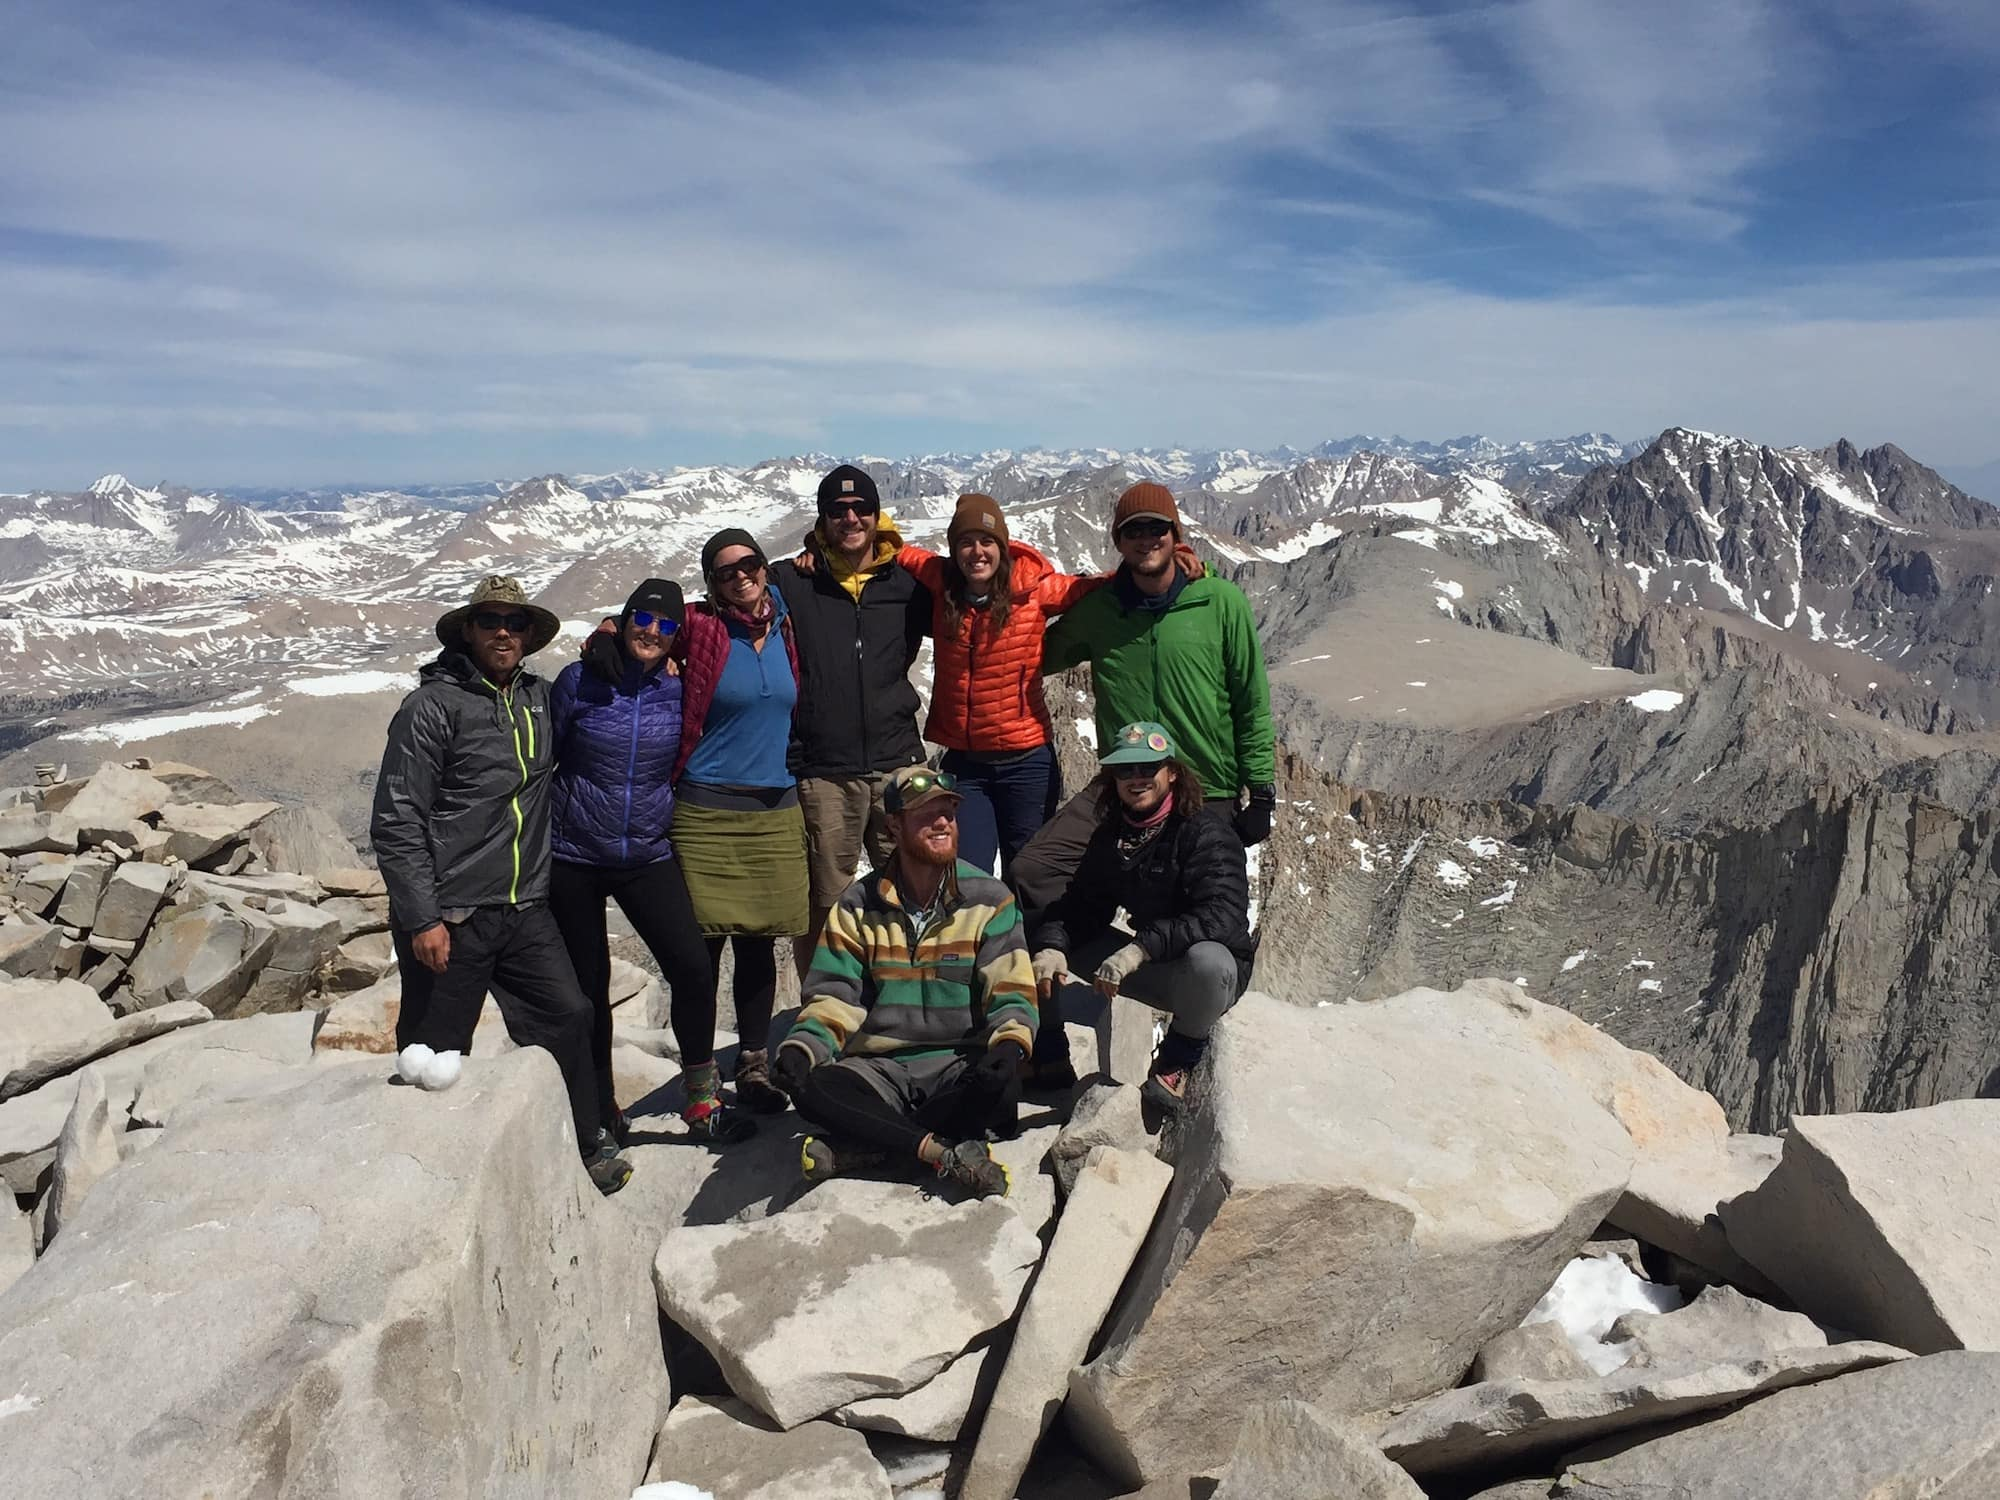 Pacific Crest Trail: 20 Meeting Points for Friends and Family